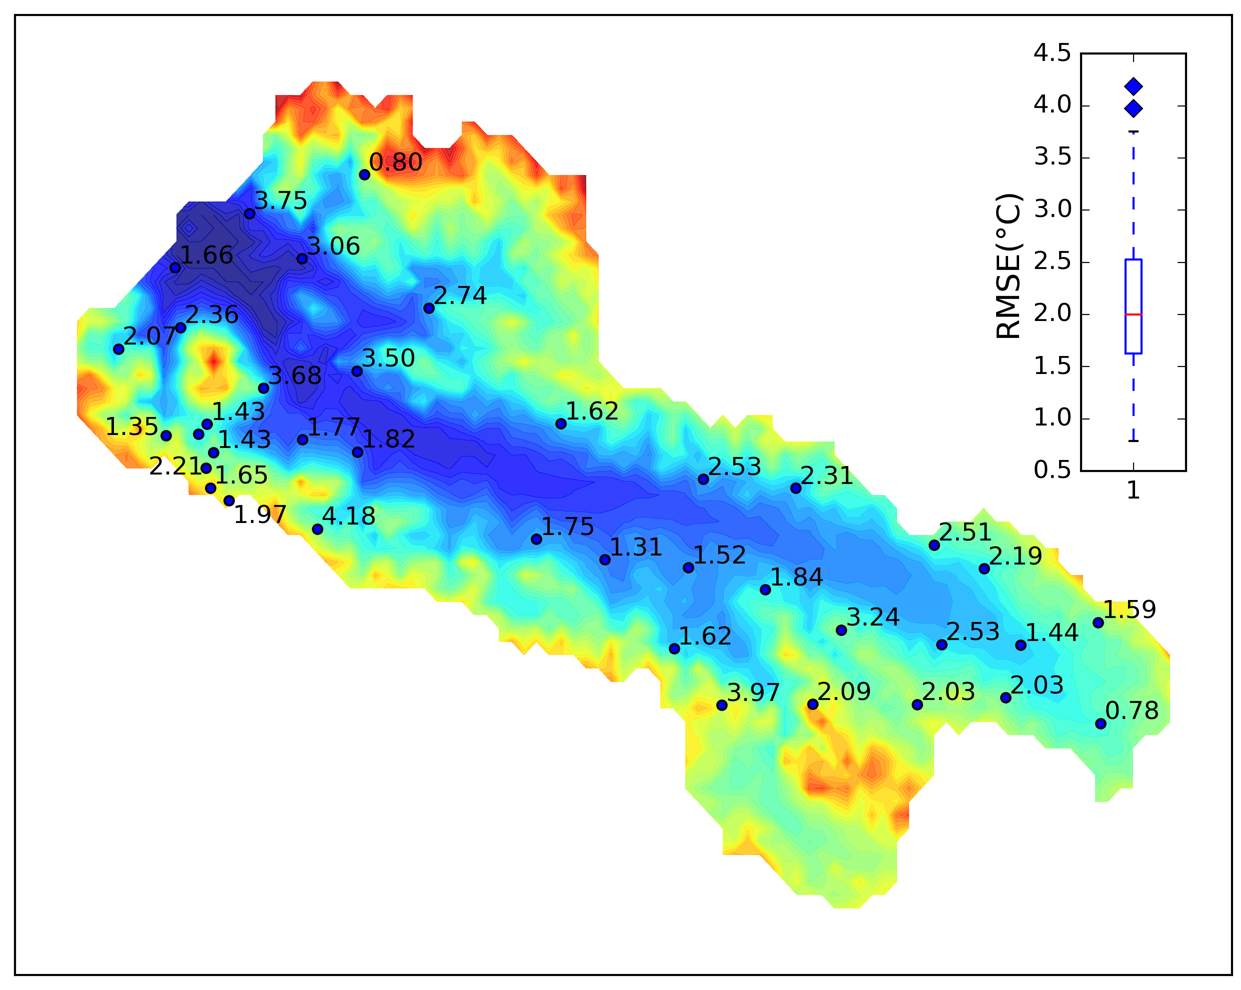 Simulated soil temperature and moisture in the Babao River Basin